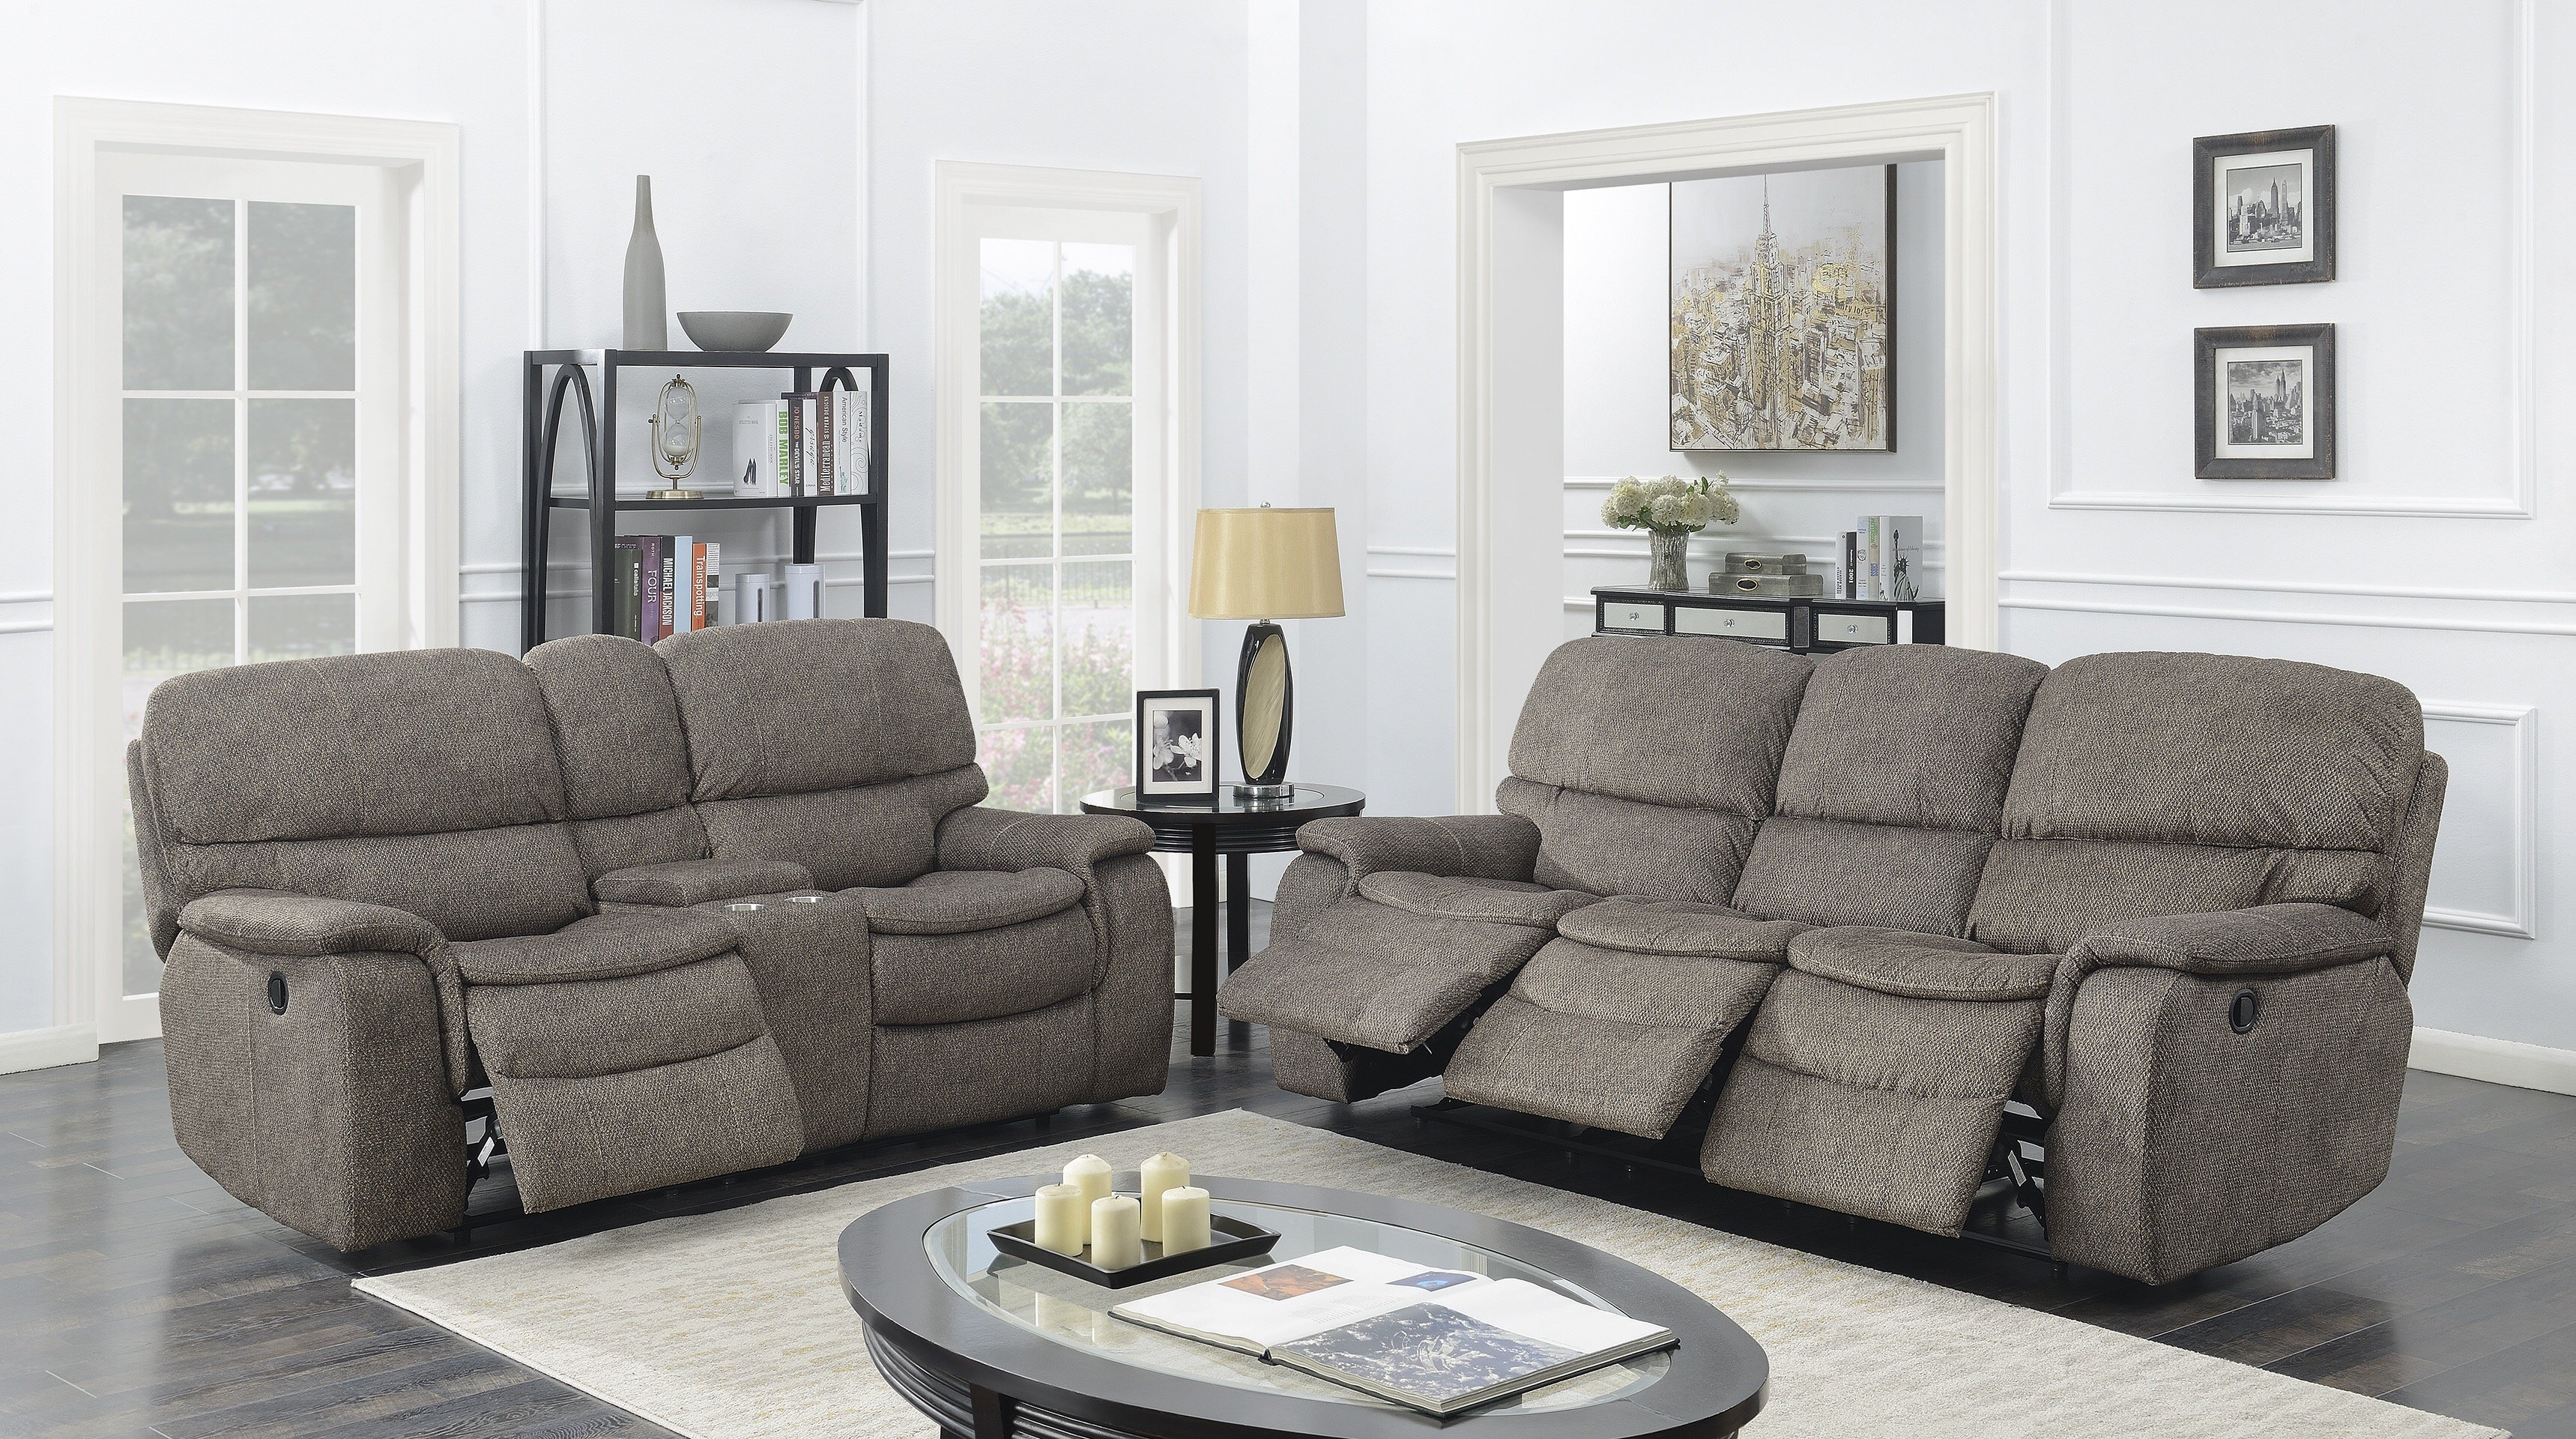 Red Barrel Studio Aidan Reclining 2 Piece Living Room Set | Wayfair Inside Aidan Ii Sofa Chairs (Image 20 of 20)